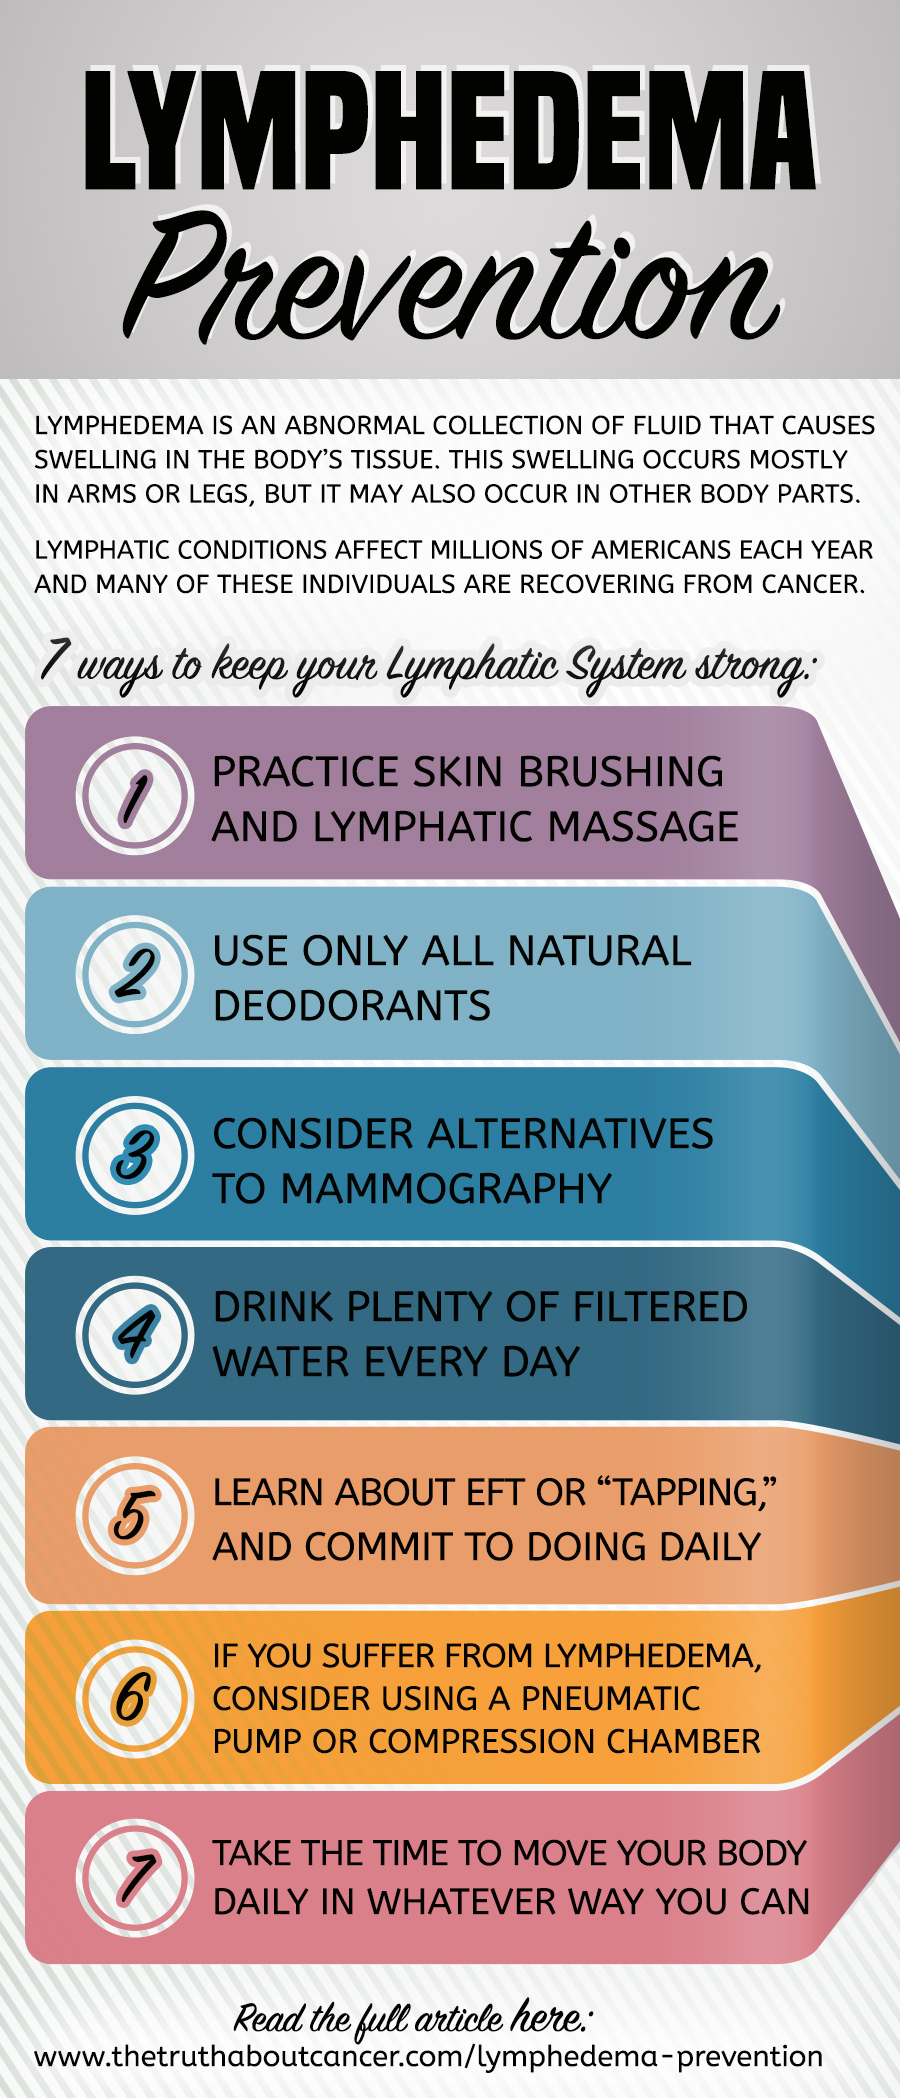 How to Prevent Lymphedema